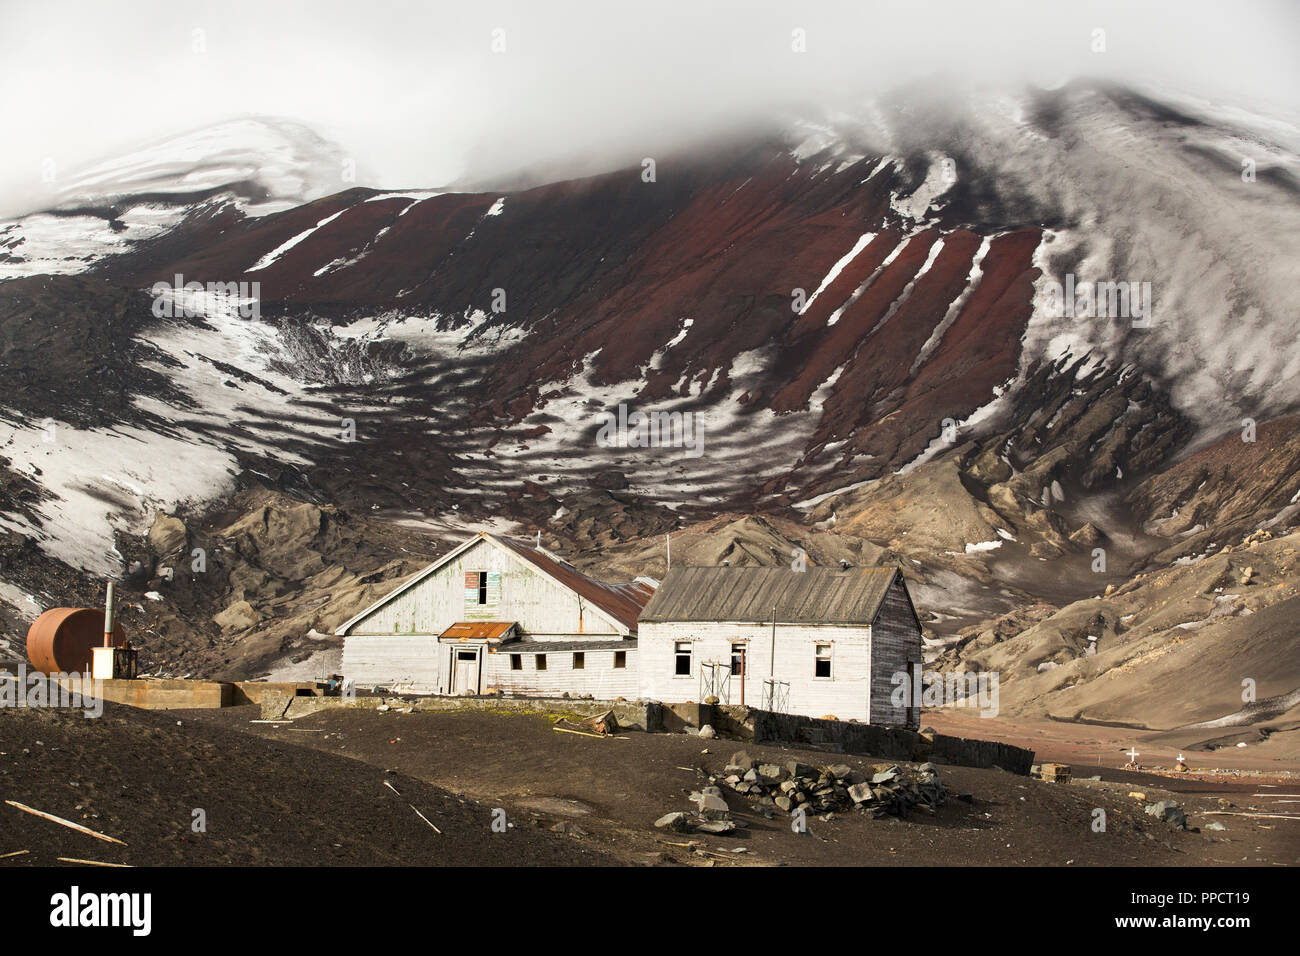 The old British Antarctic Survey station on Deception Island in the South Shetland Islands off the Antarctic Peninsula which is an active volcanic caldera. It was abandoned in 1967 when it was over run by a volcanic eruption. Stock Photo